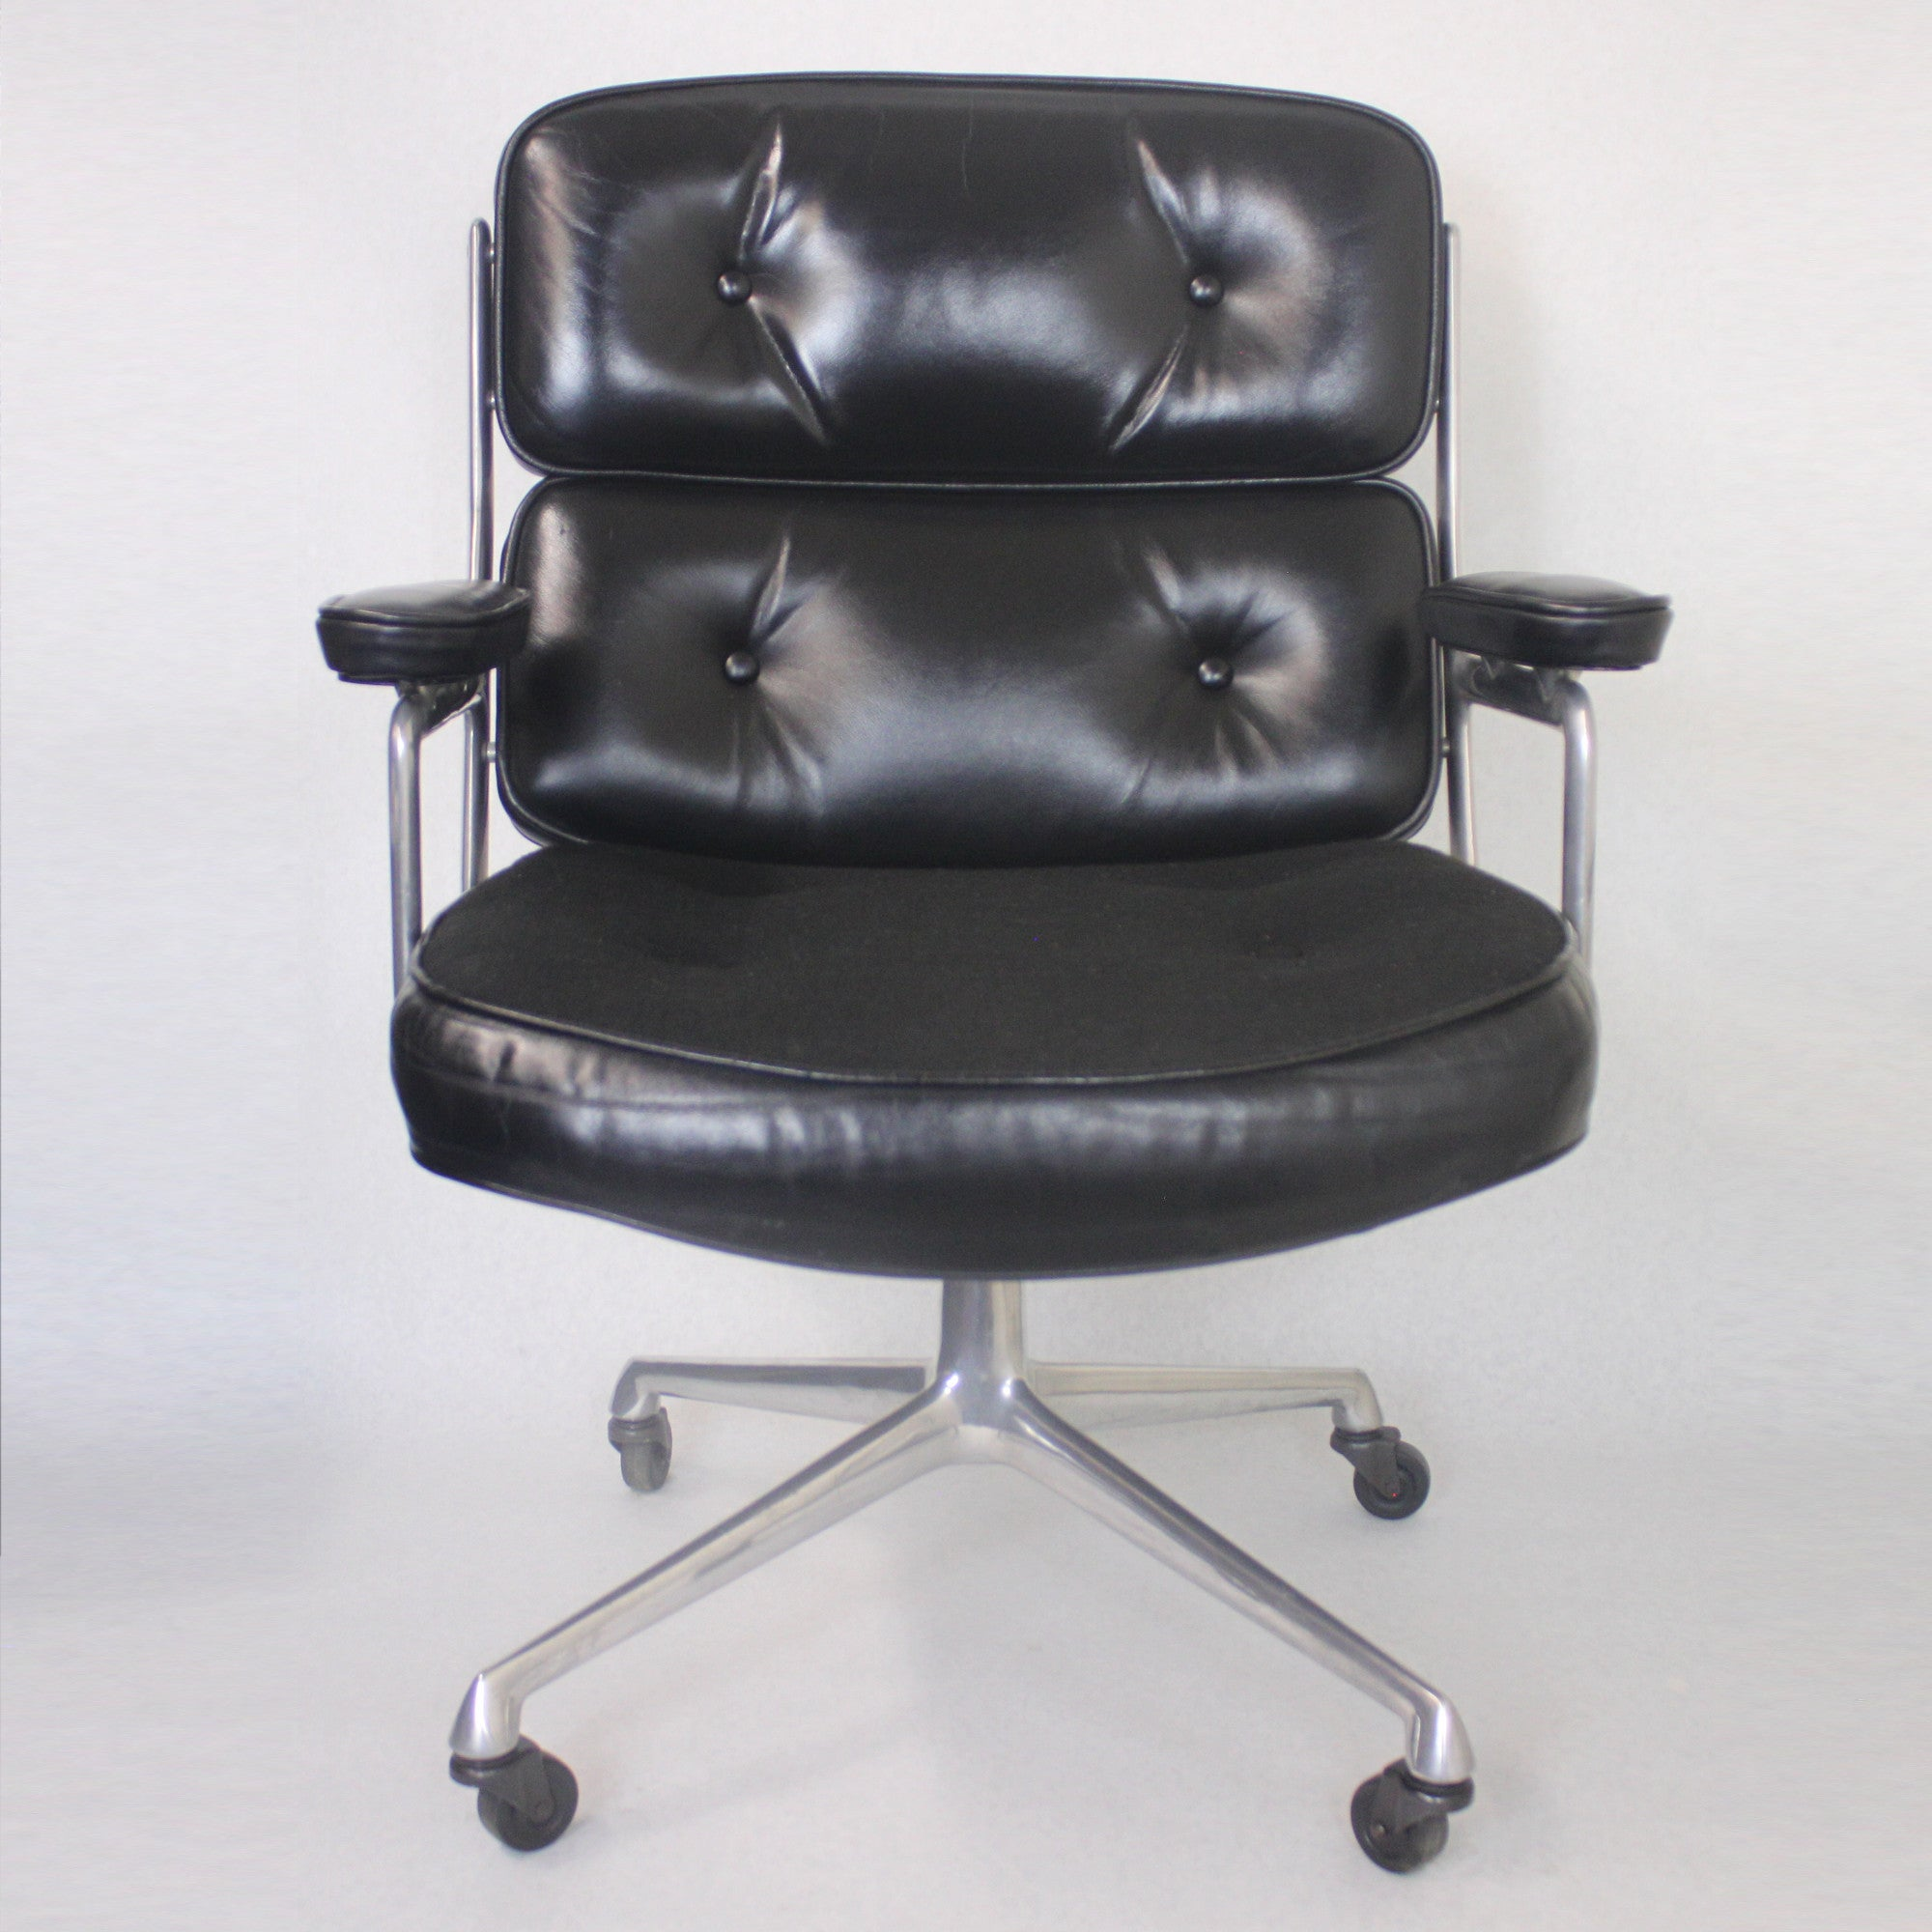 Lieblich 1960s Mid Century Modern Herman Miller Time Life Executive Desk Lounge  Chair For Sale At 1stdibs